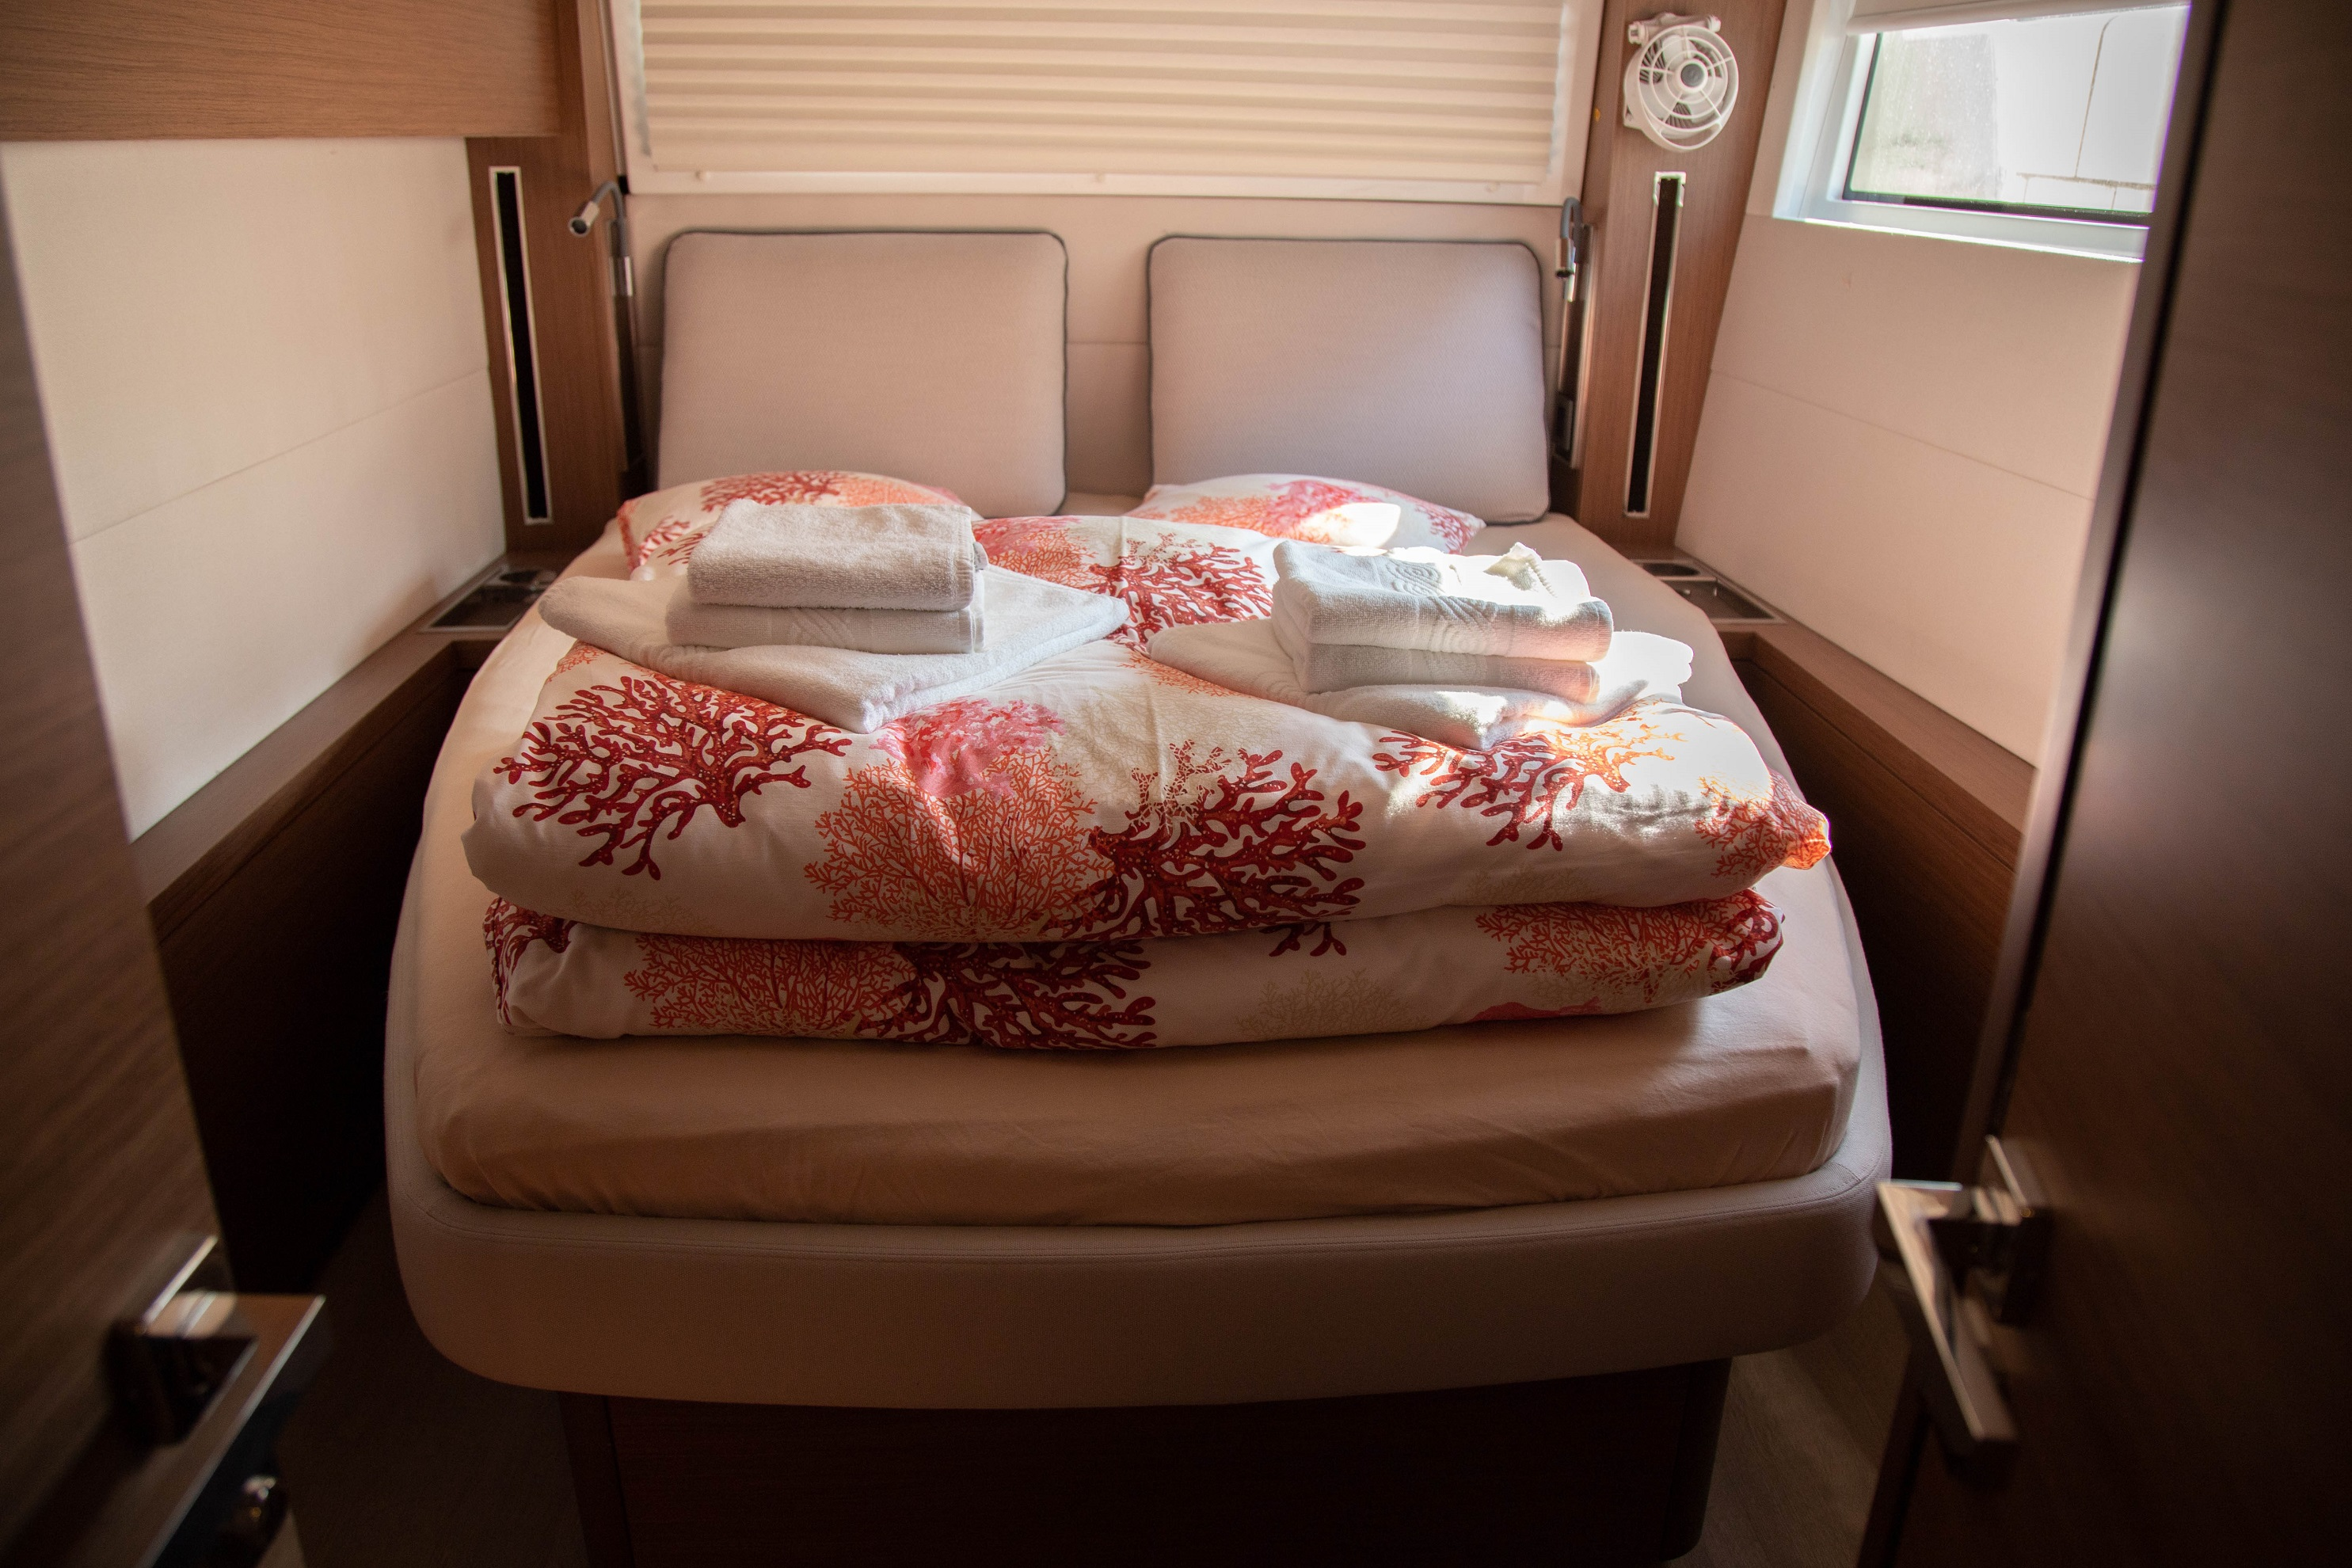 Lagoon 50 LUX elegance (2019) equipped with aircon (TWIN JOY)  - 14